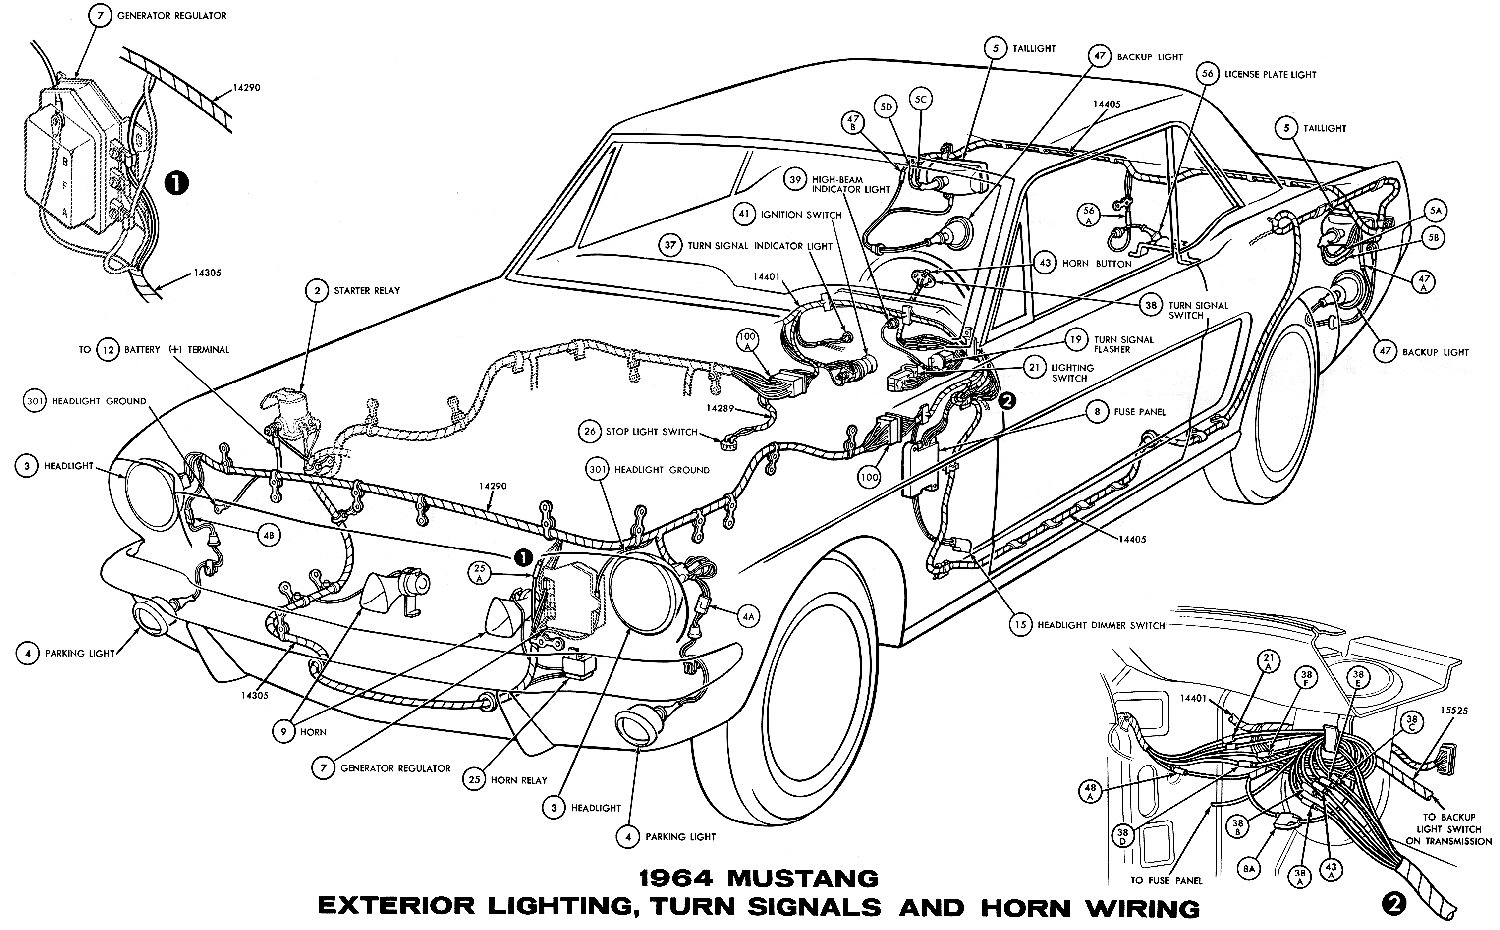 1964h 1964 mustang wiring diagrams average joe restoration 1965 mustang turn signal wiring diagram at bakdesigns.co